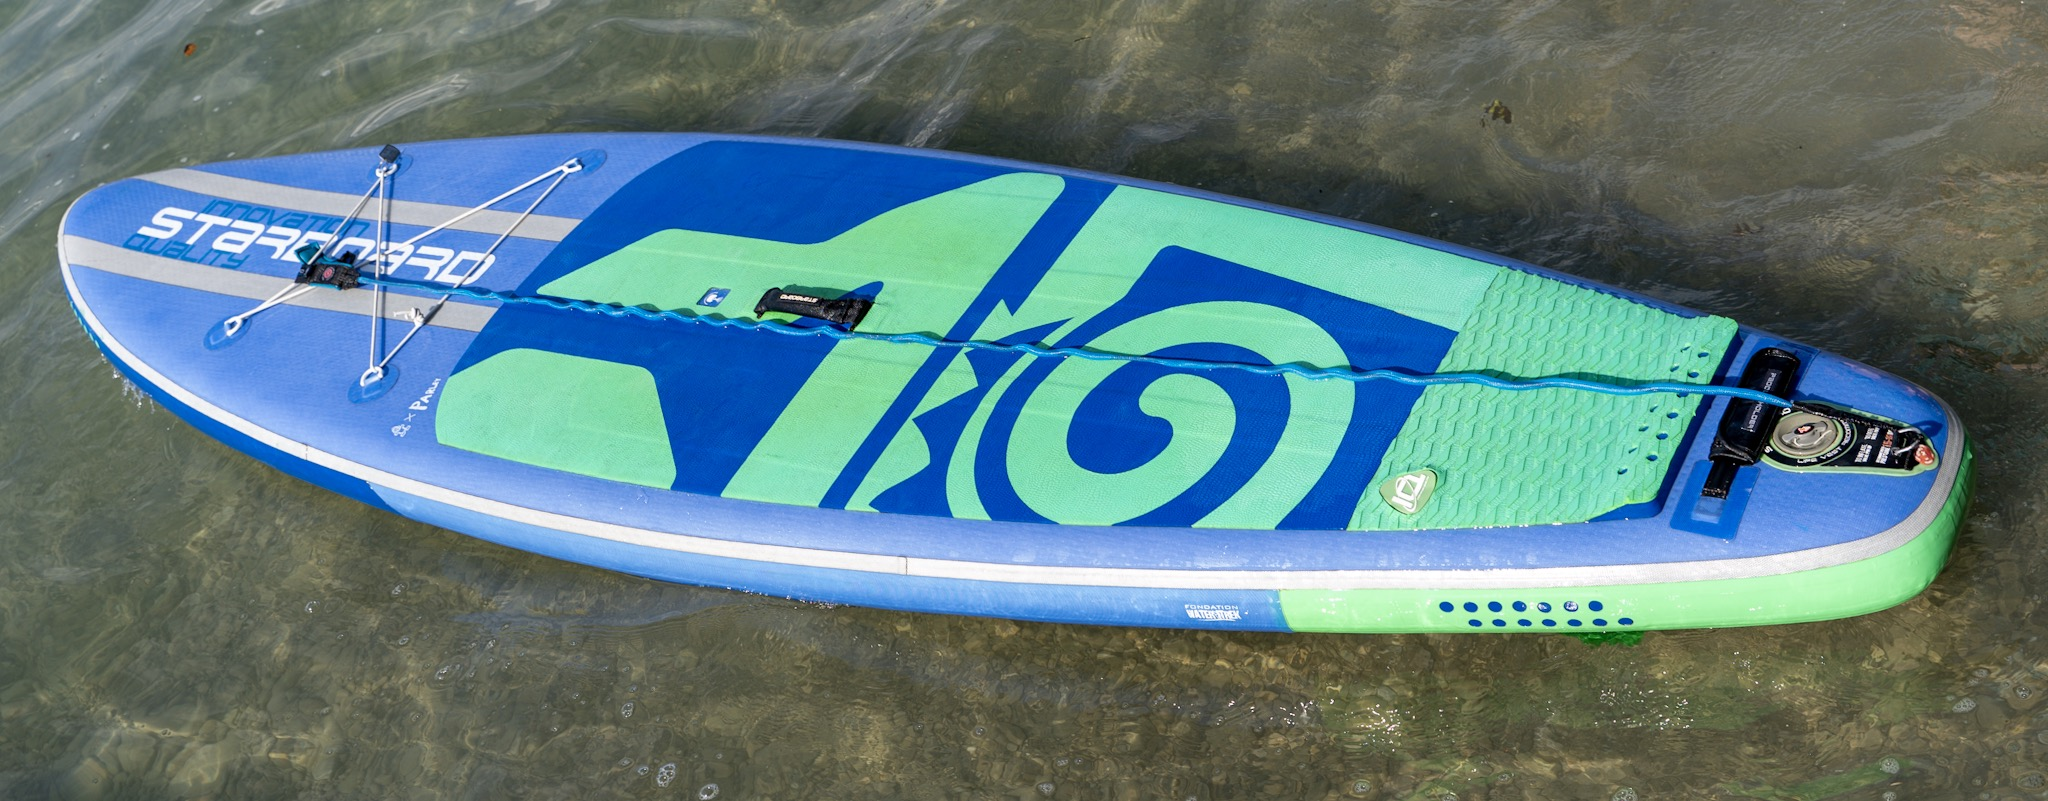 "Starboard Wide Point Zen 10'5"" (Testboard)"